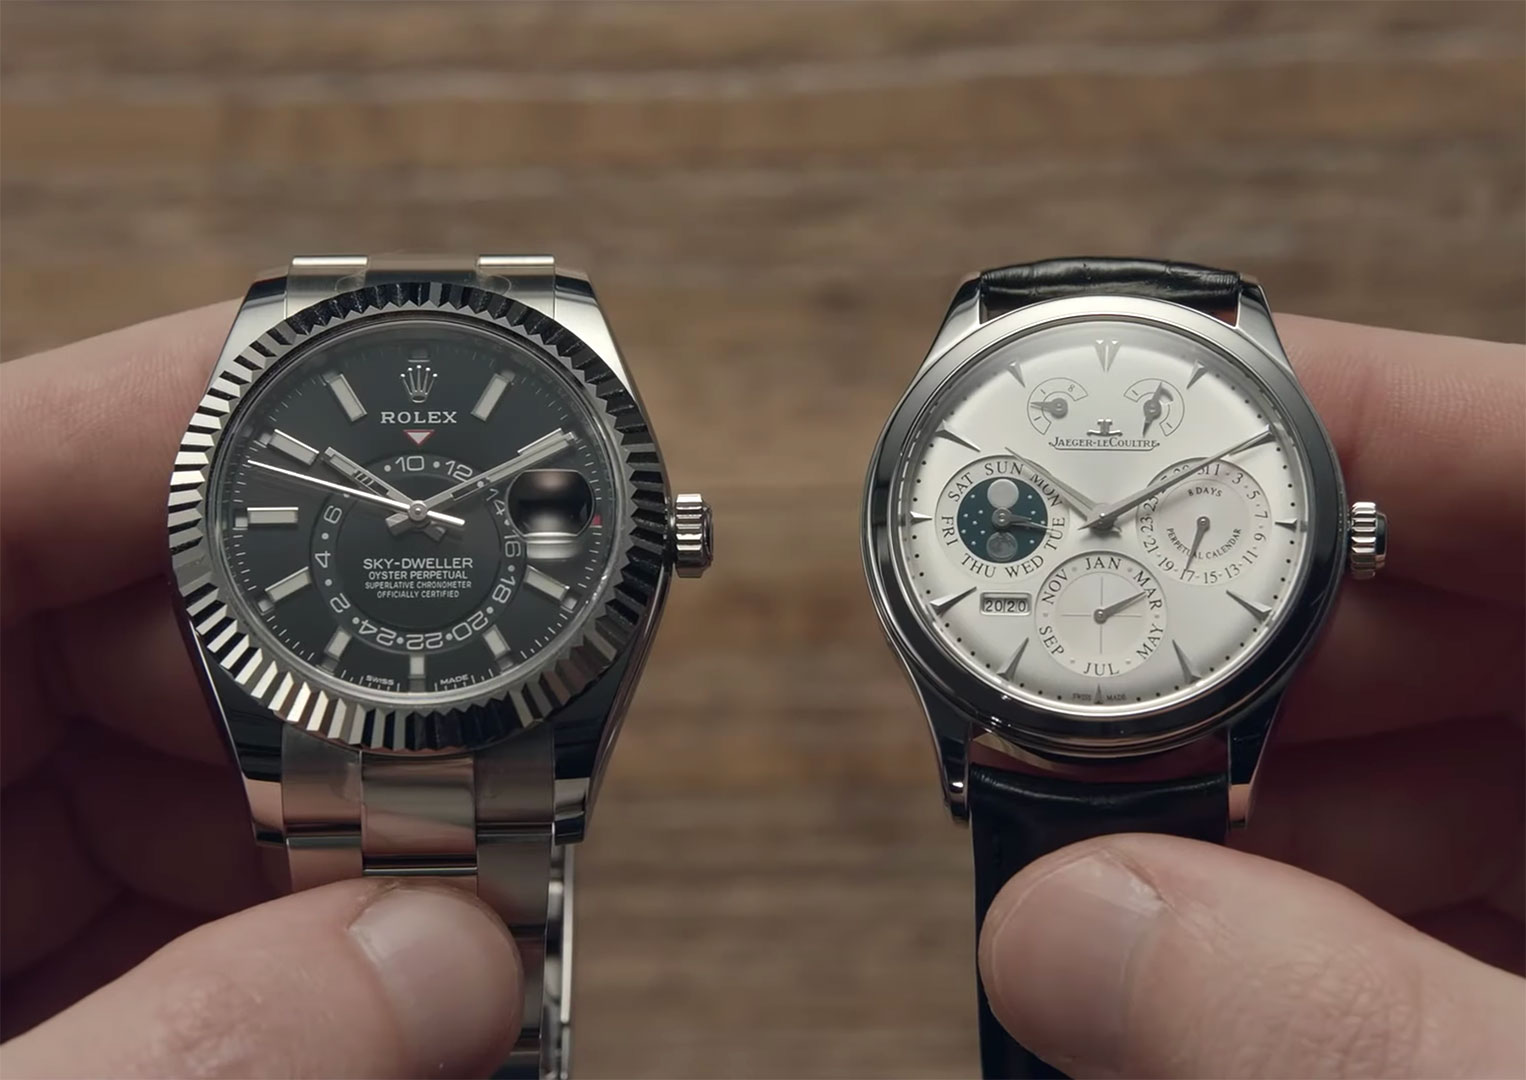 Jaeger-LeCoultre was founded in 1833 by Antoine LeCoultre